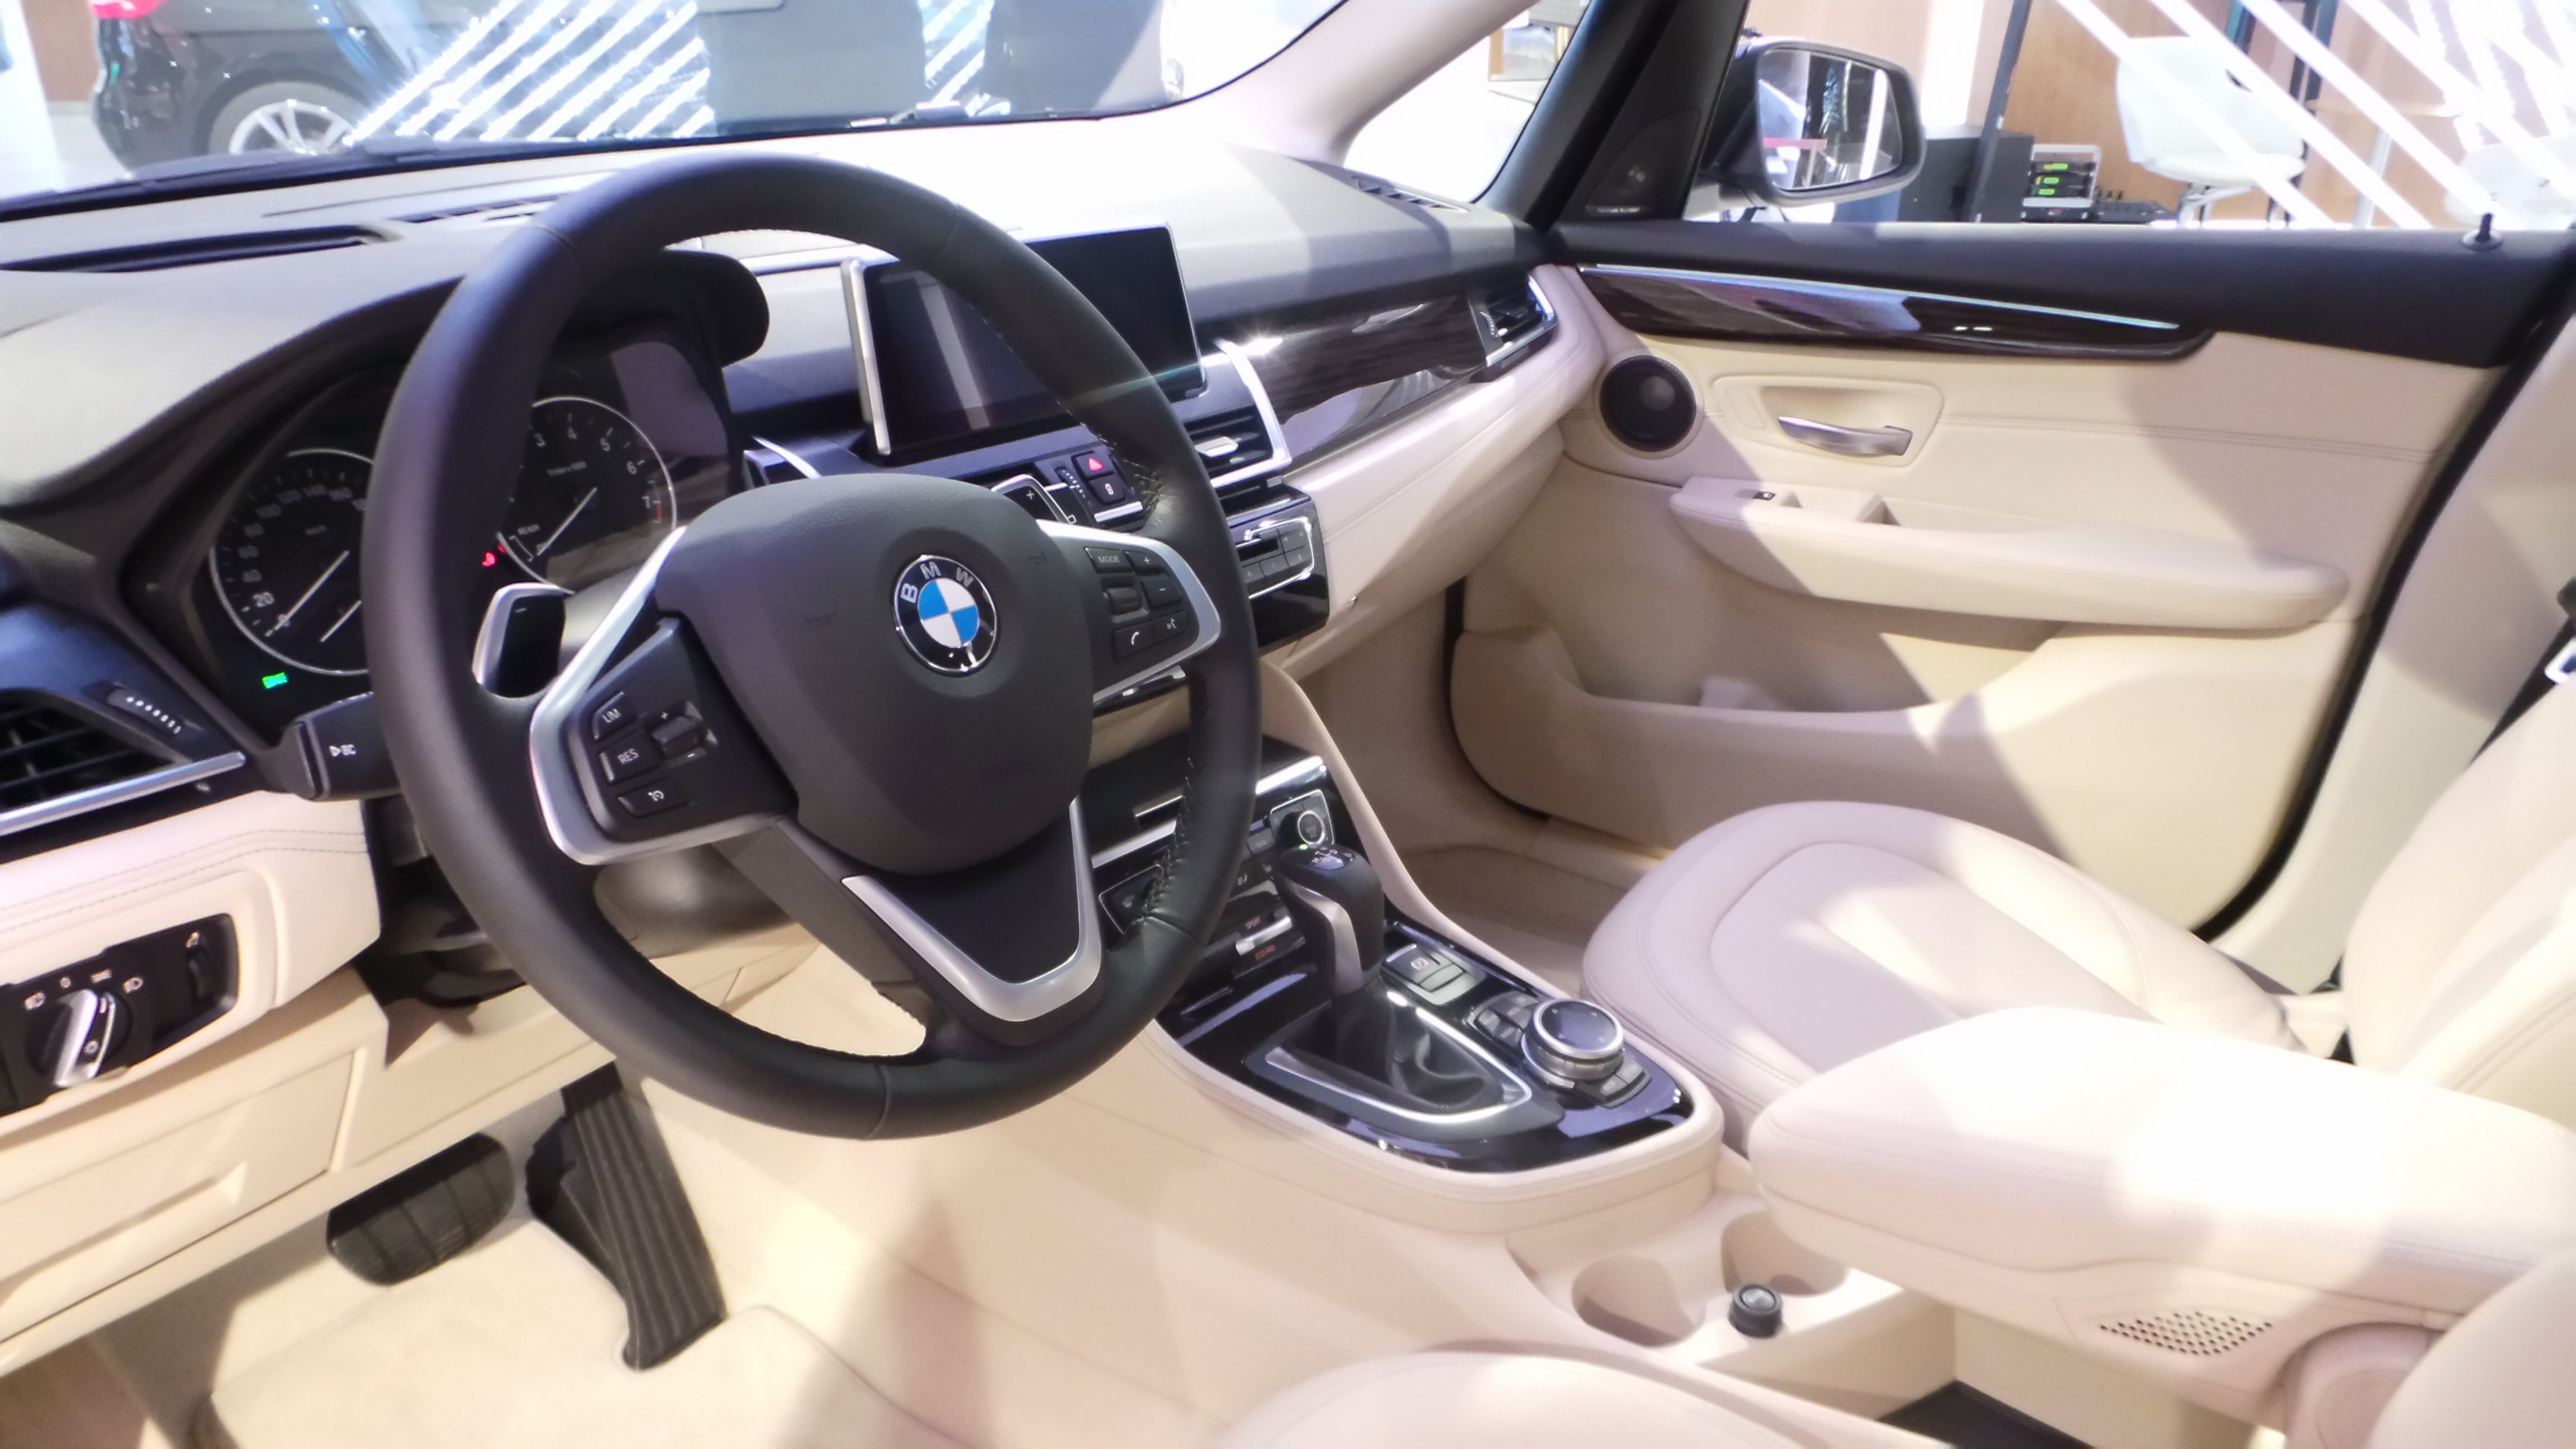 S rie 2 active tourer le premier monospace de bmw les for Bmw serie 9 interieur